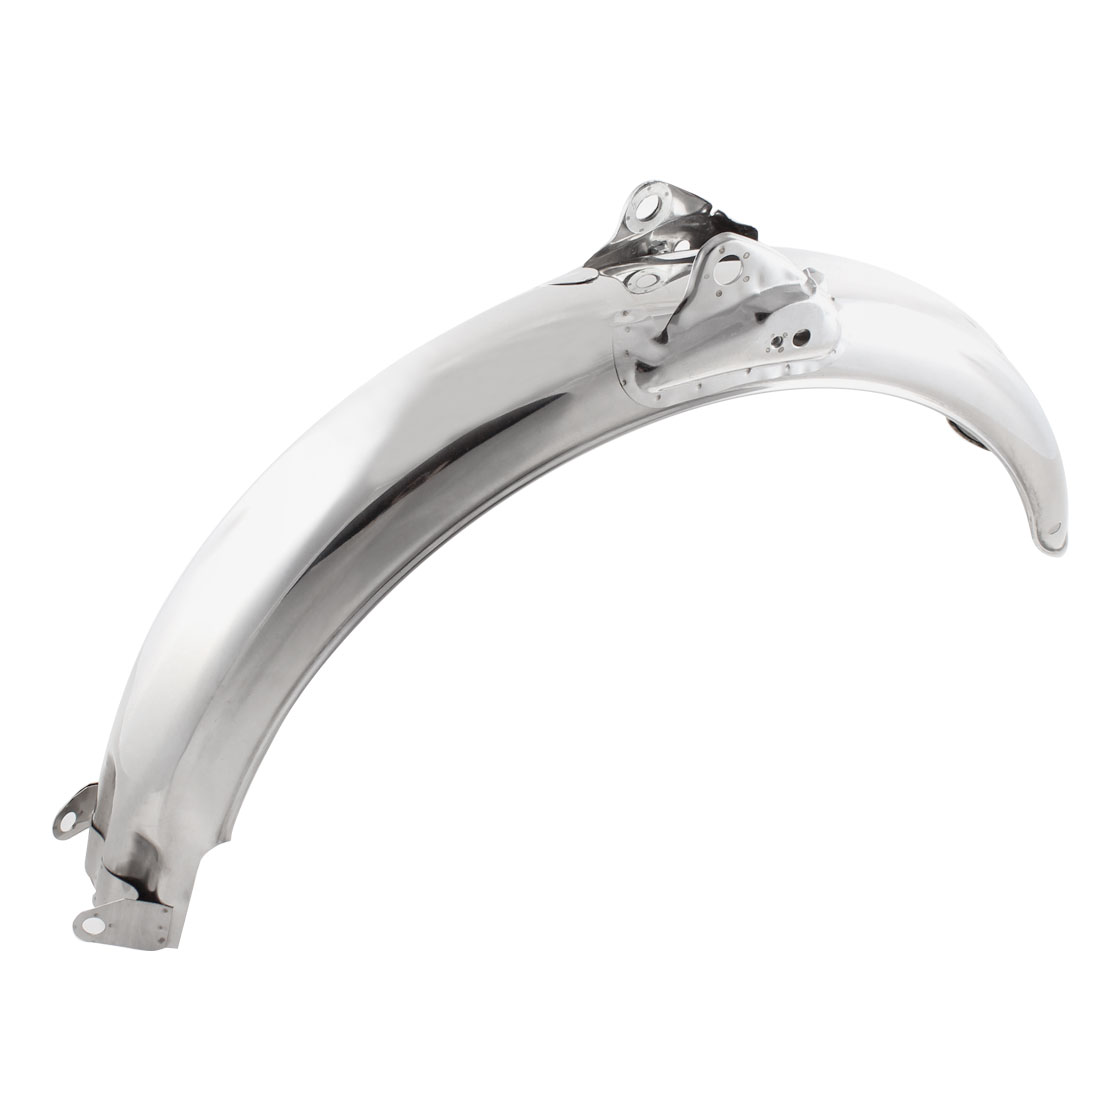 Motorcycle Stainless Steel Shield Mud Guards Splash Flaps for JH70